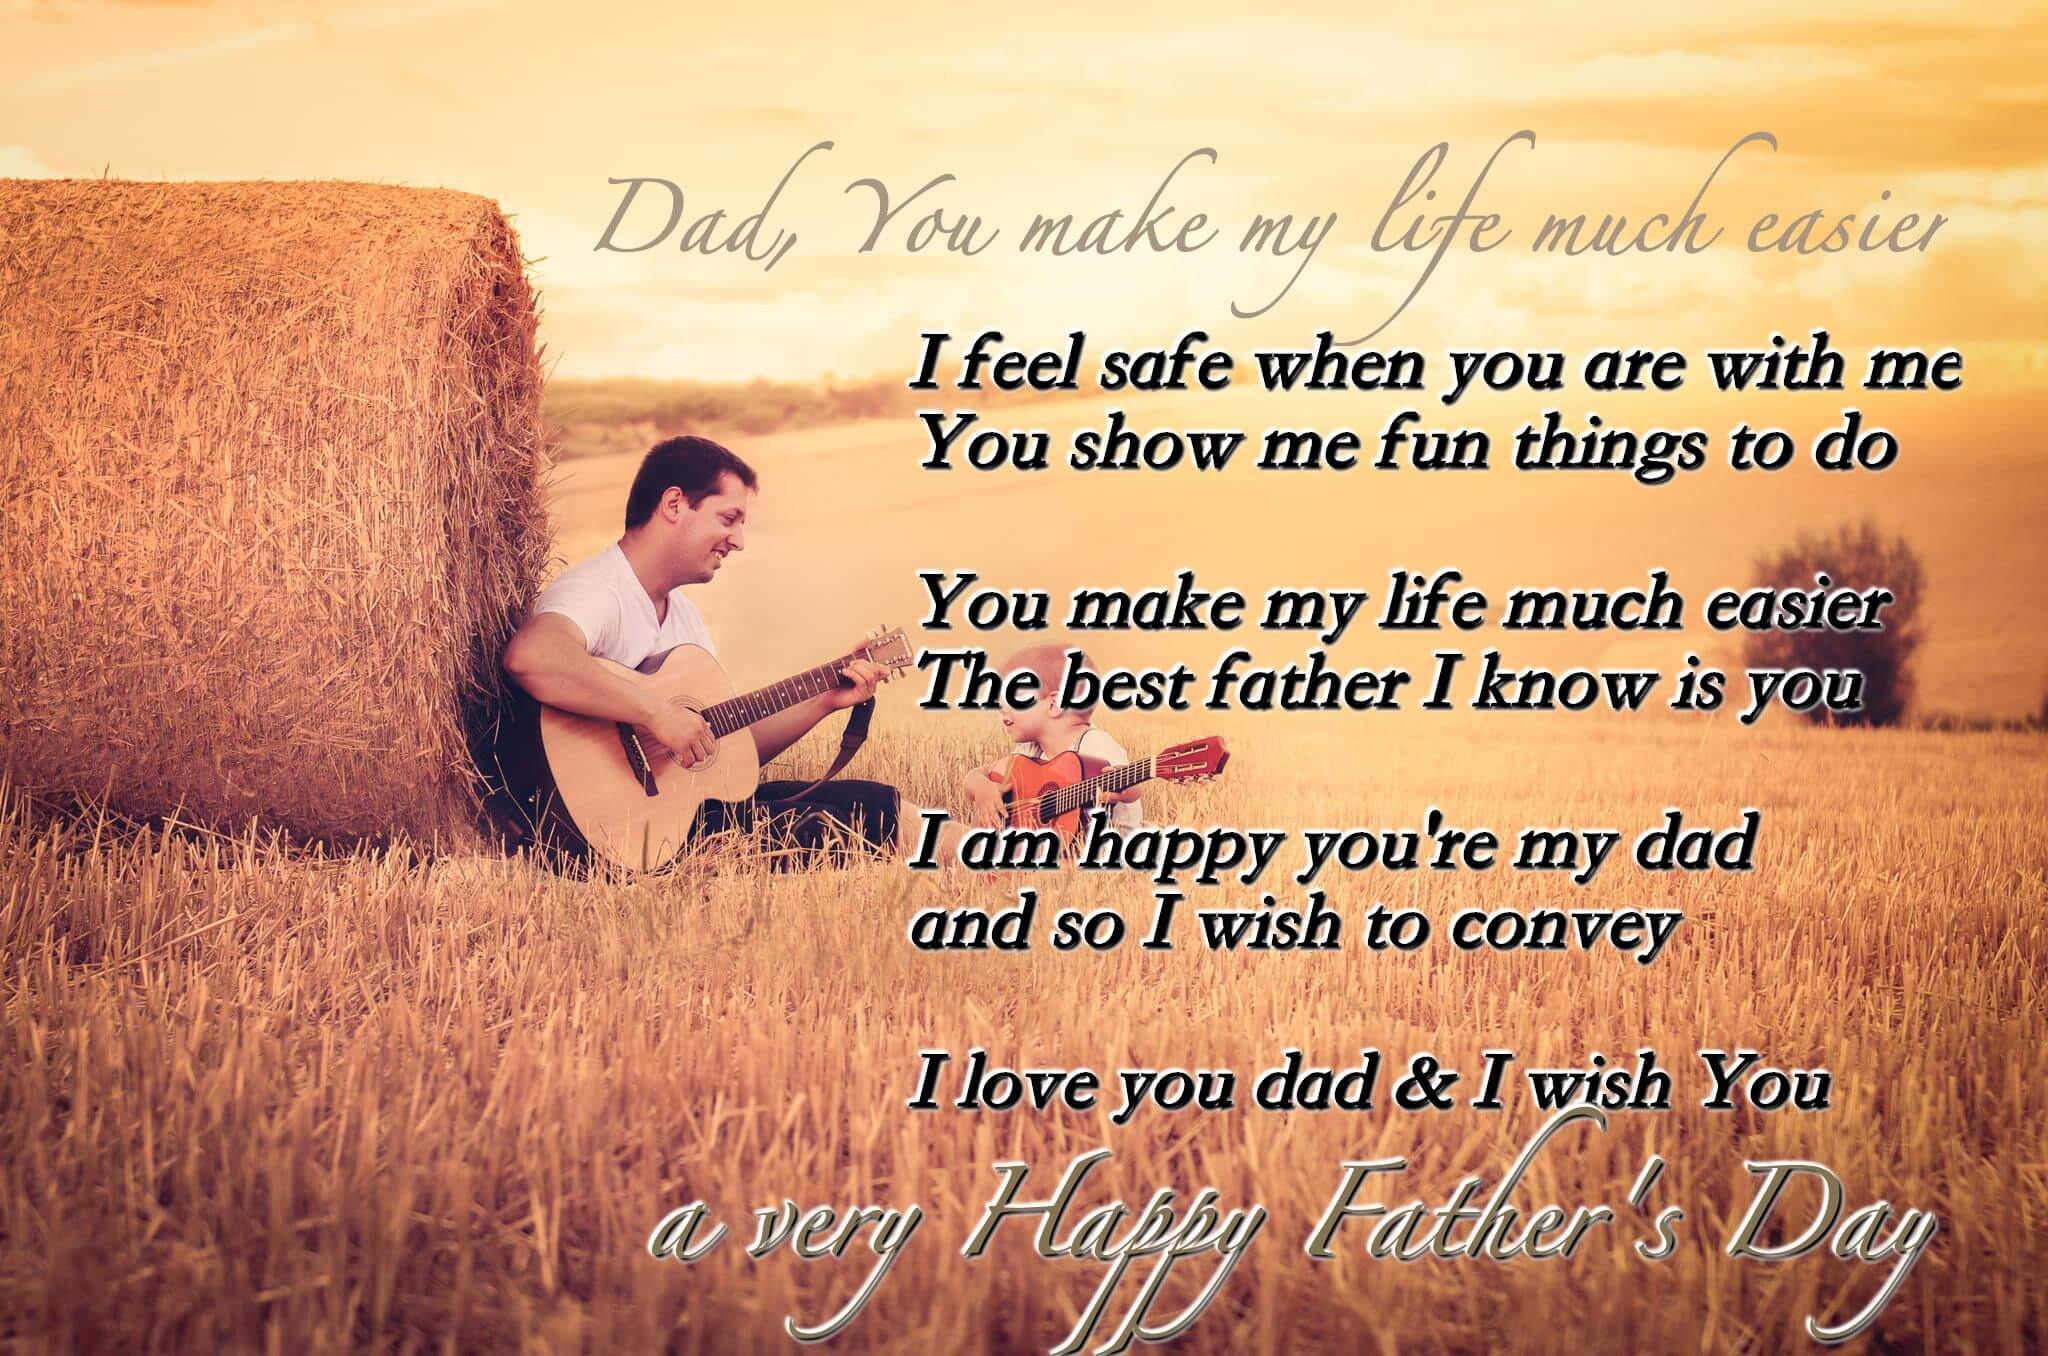 Episode Happy Fathers Day Poems From Daughter About Quote